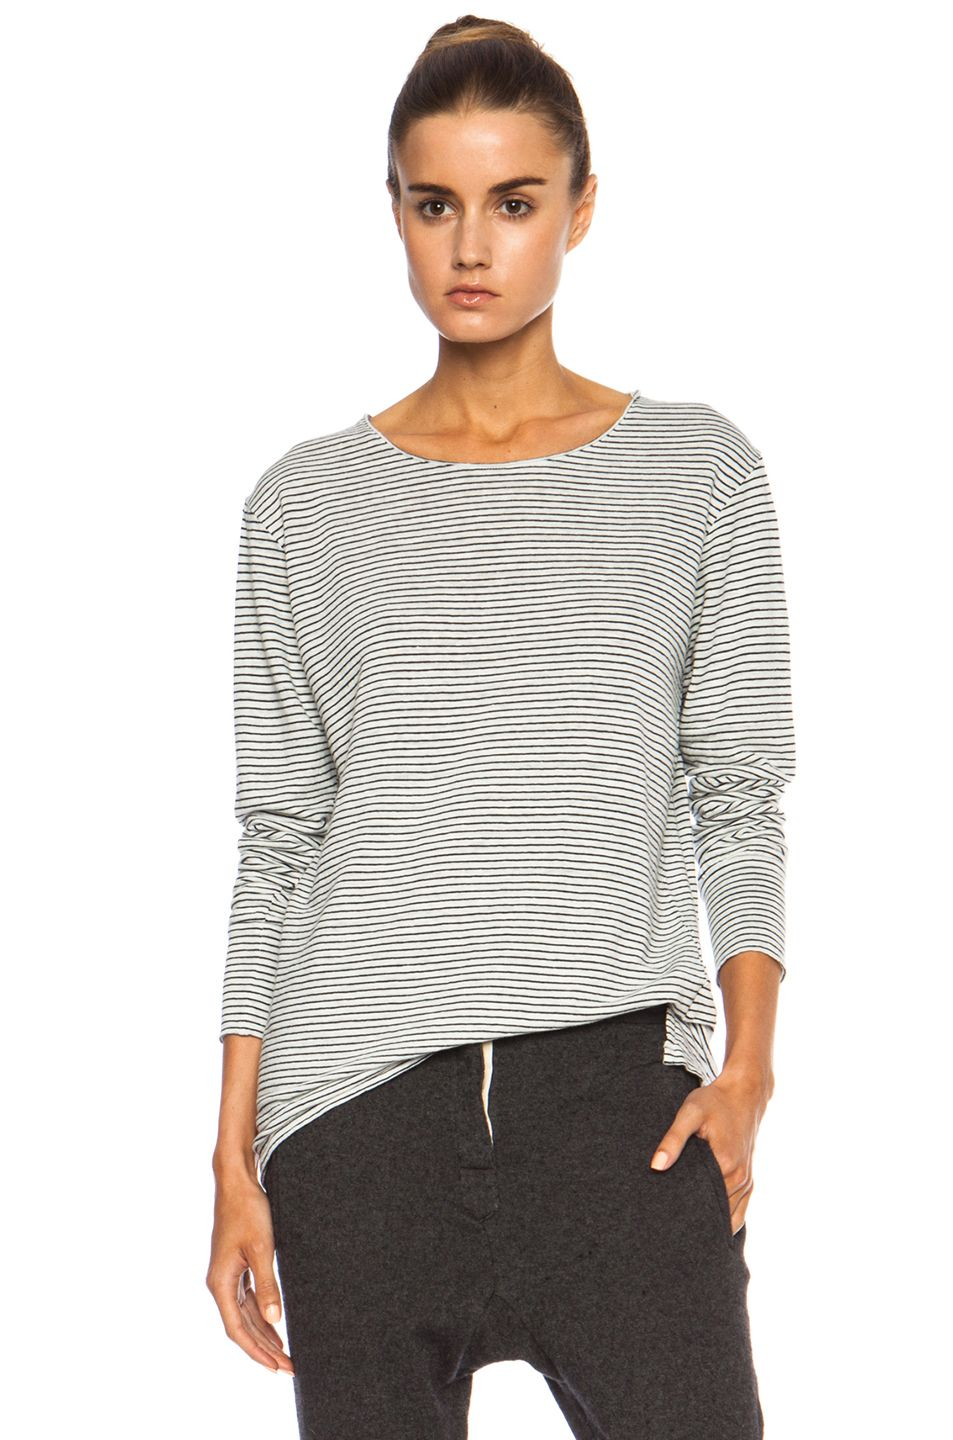 Black and white striped print tee top by Isabel Marant.